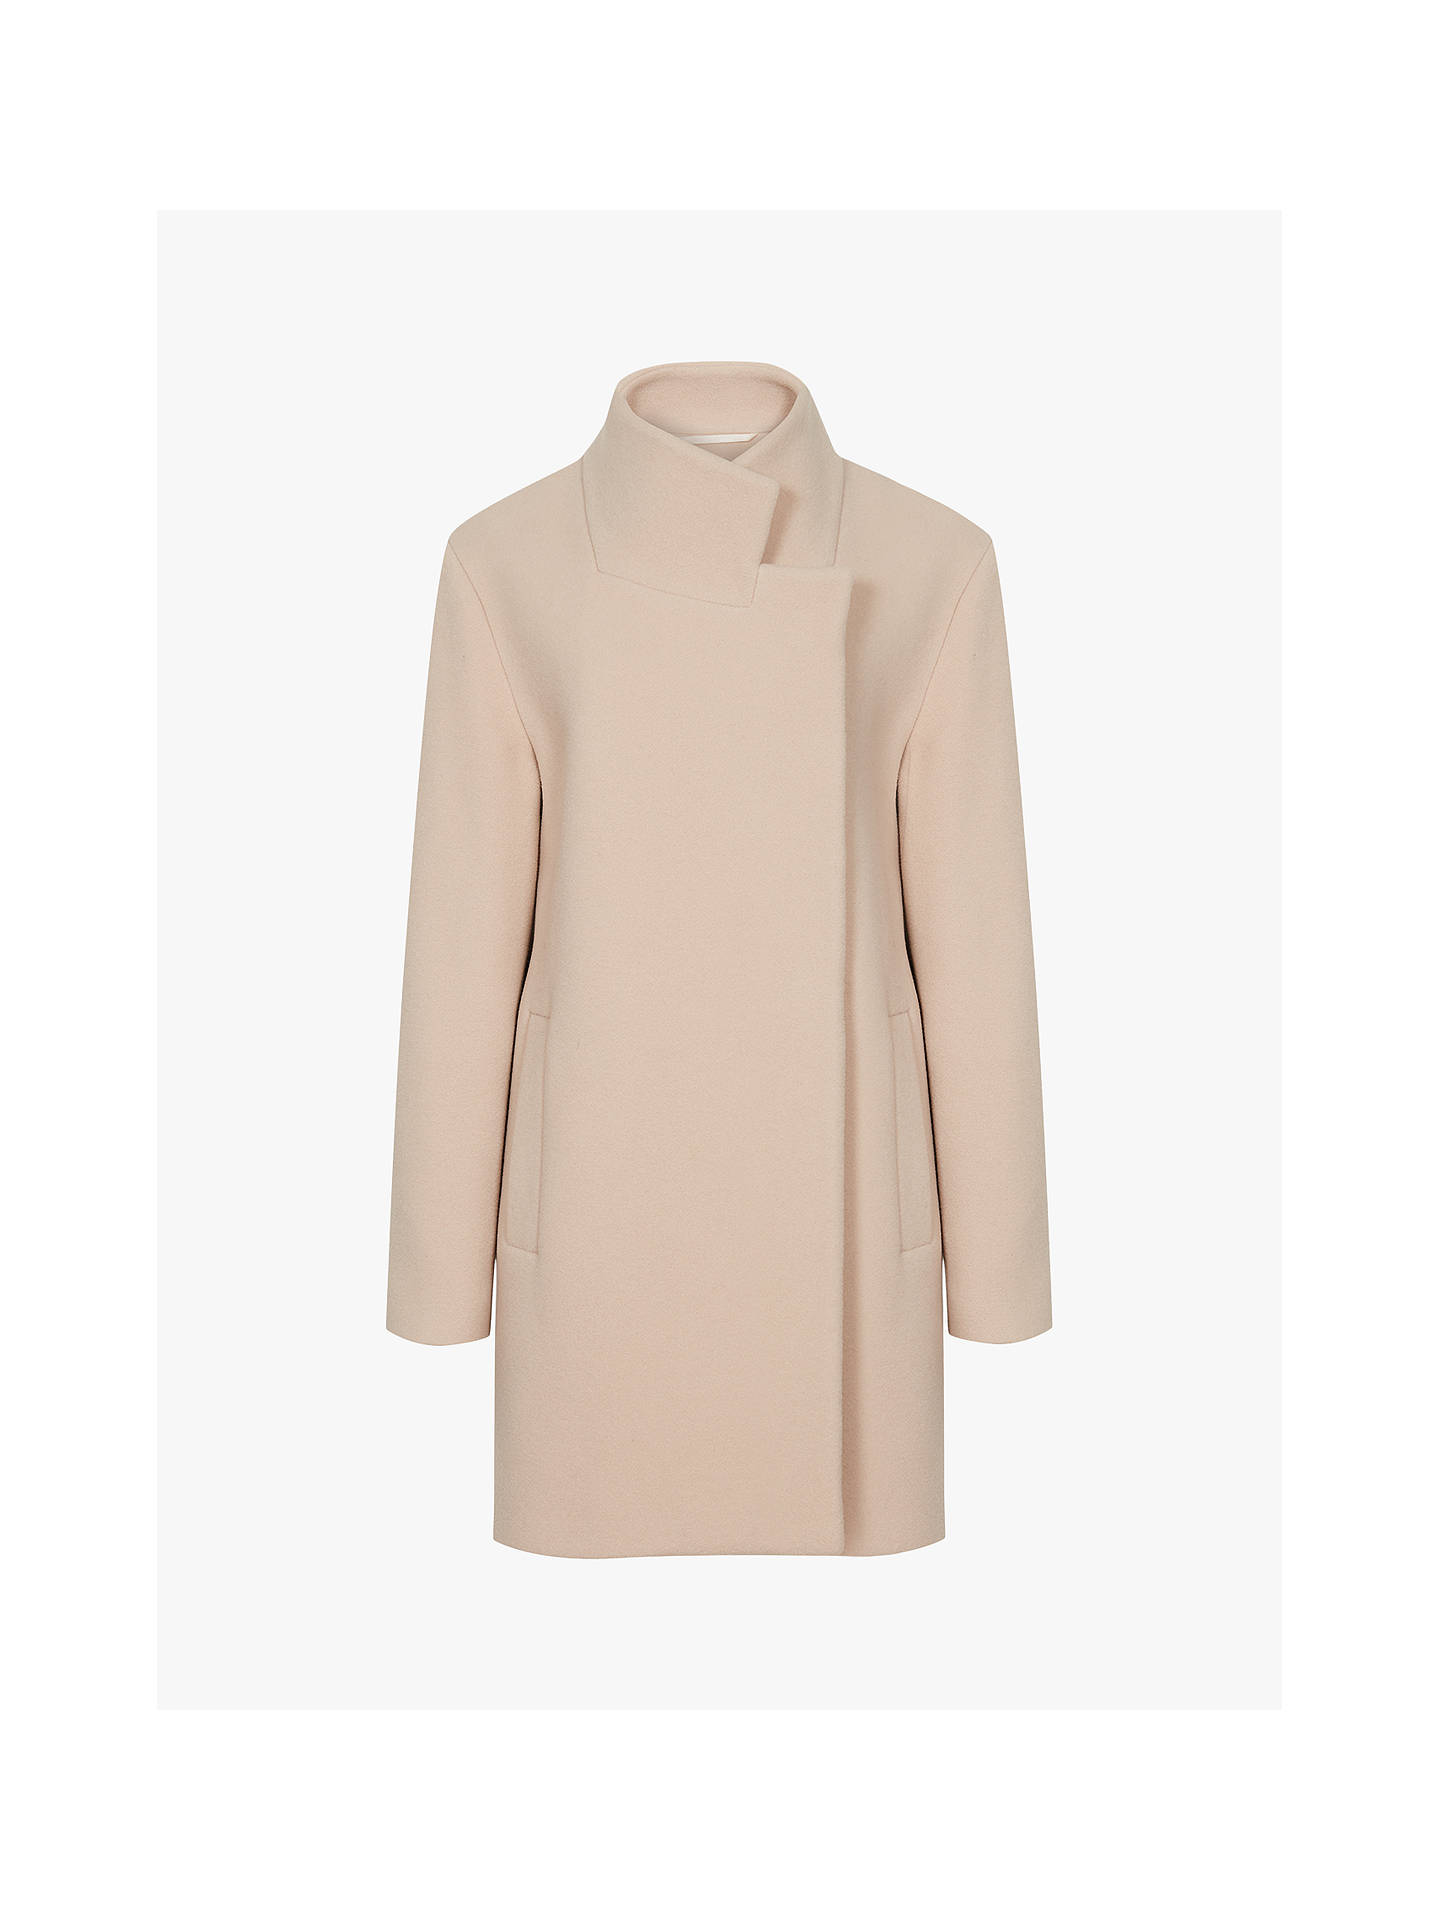 Buy Reiss Sicily Wool Rich Tailored Coat, Pale Pink, 6 Online at johnlewis.com